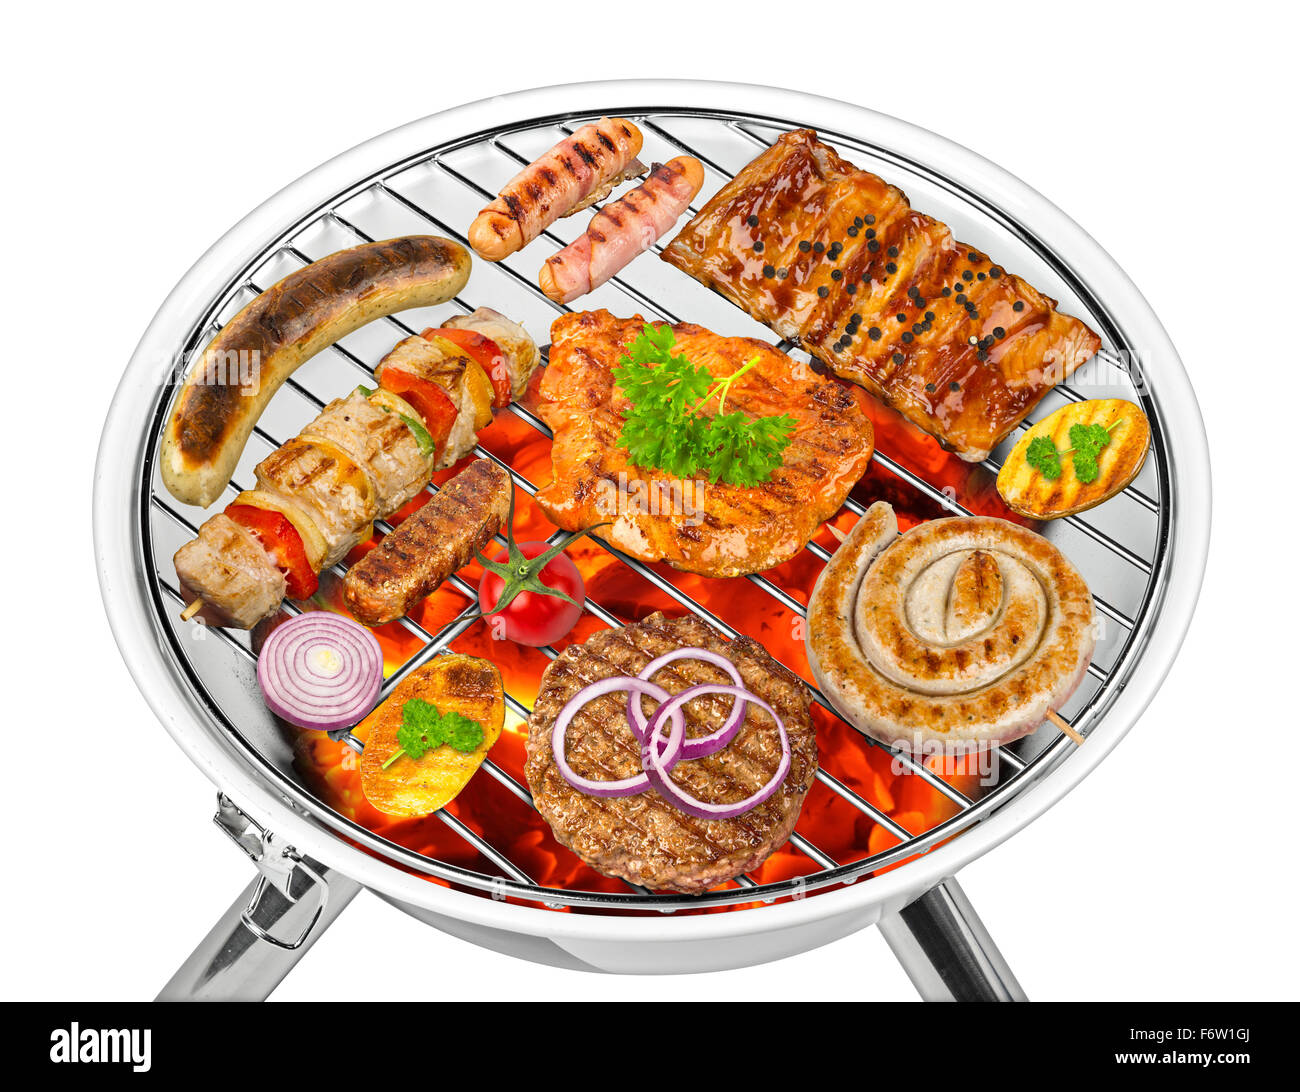 white kettle grill with grilled food - Stock Image